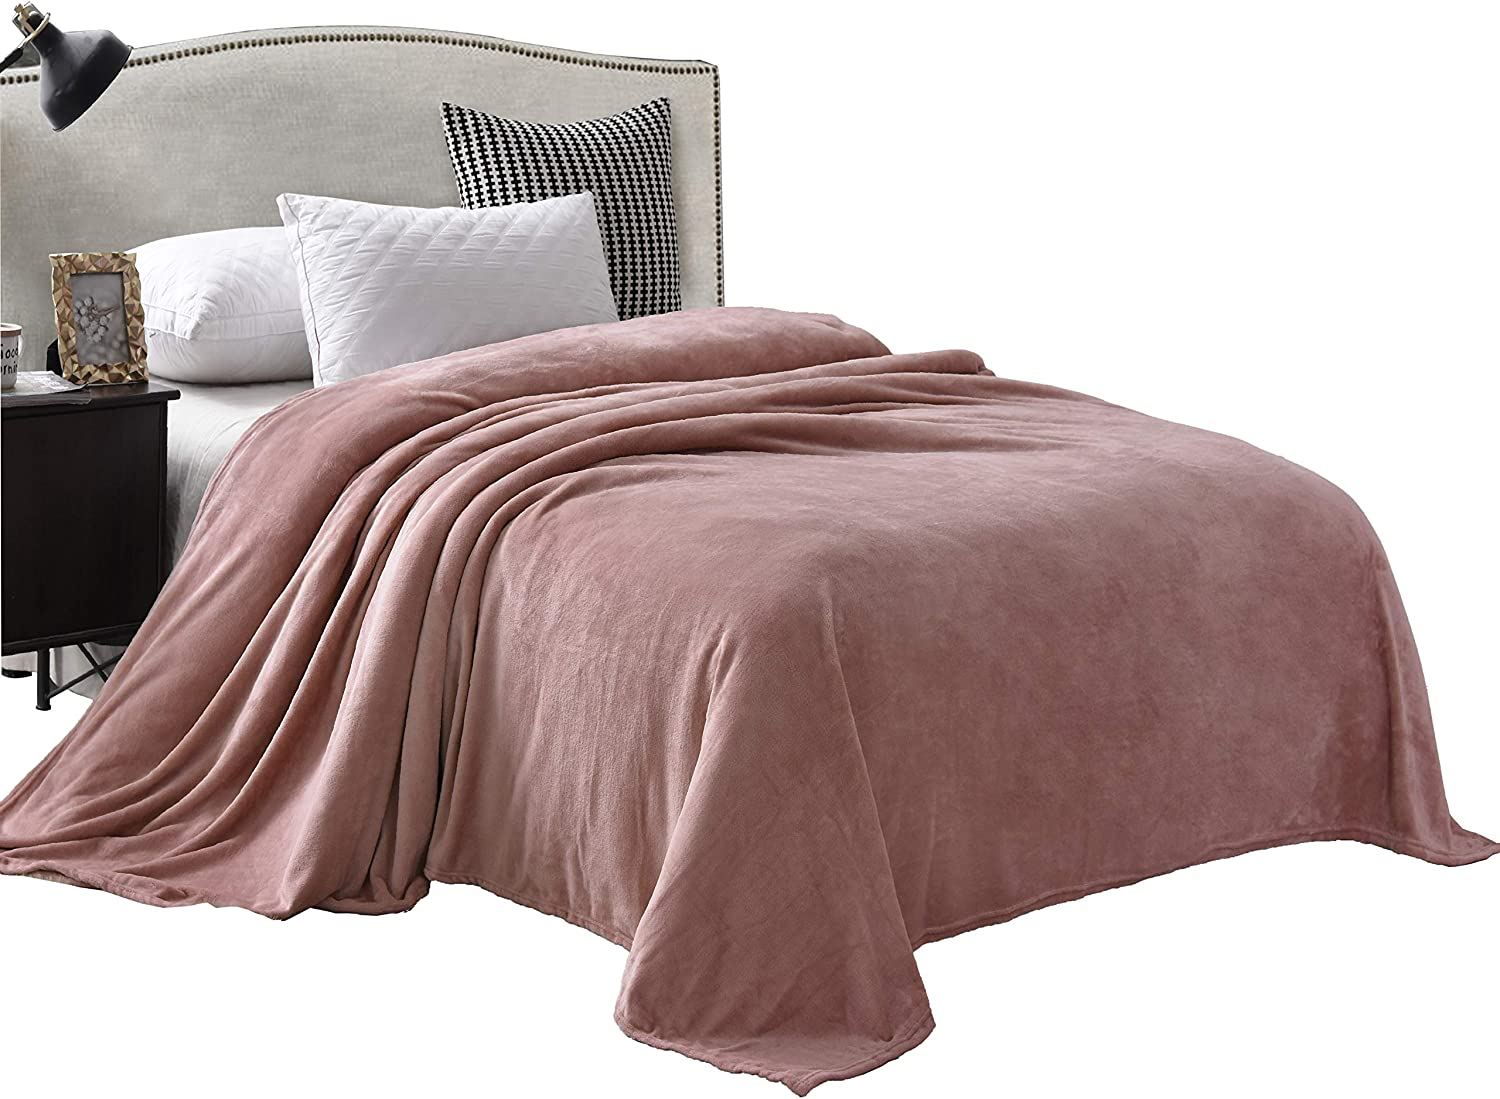 """Exclusivo Mezcla Luxury Queen Size Flannel Velvet Plush Solid Bed Blanket as Bedspread/Coverlet/Bed Cover (90"""" x 90"""", Pink) - Soft, Lightweight, Warm and Cozy"""